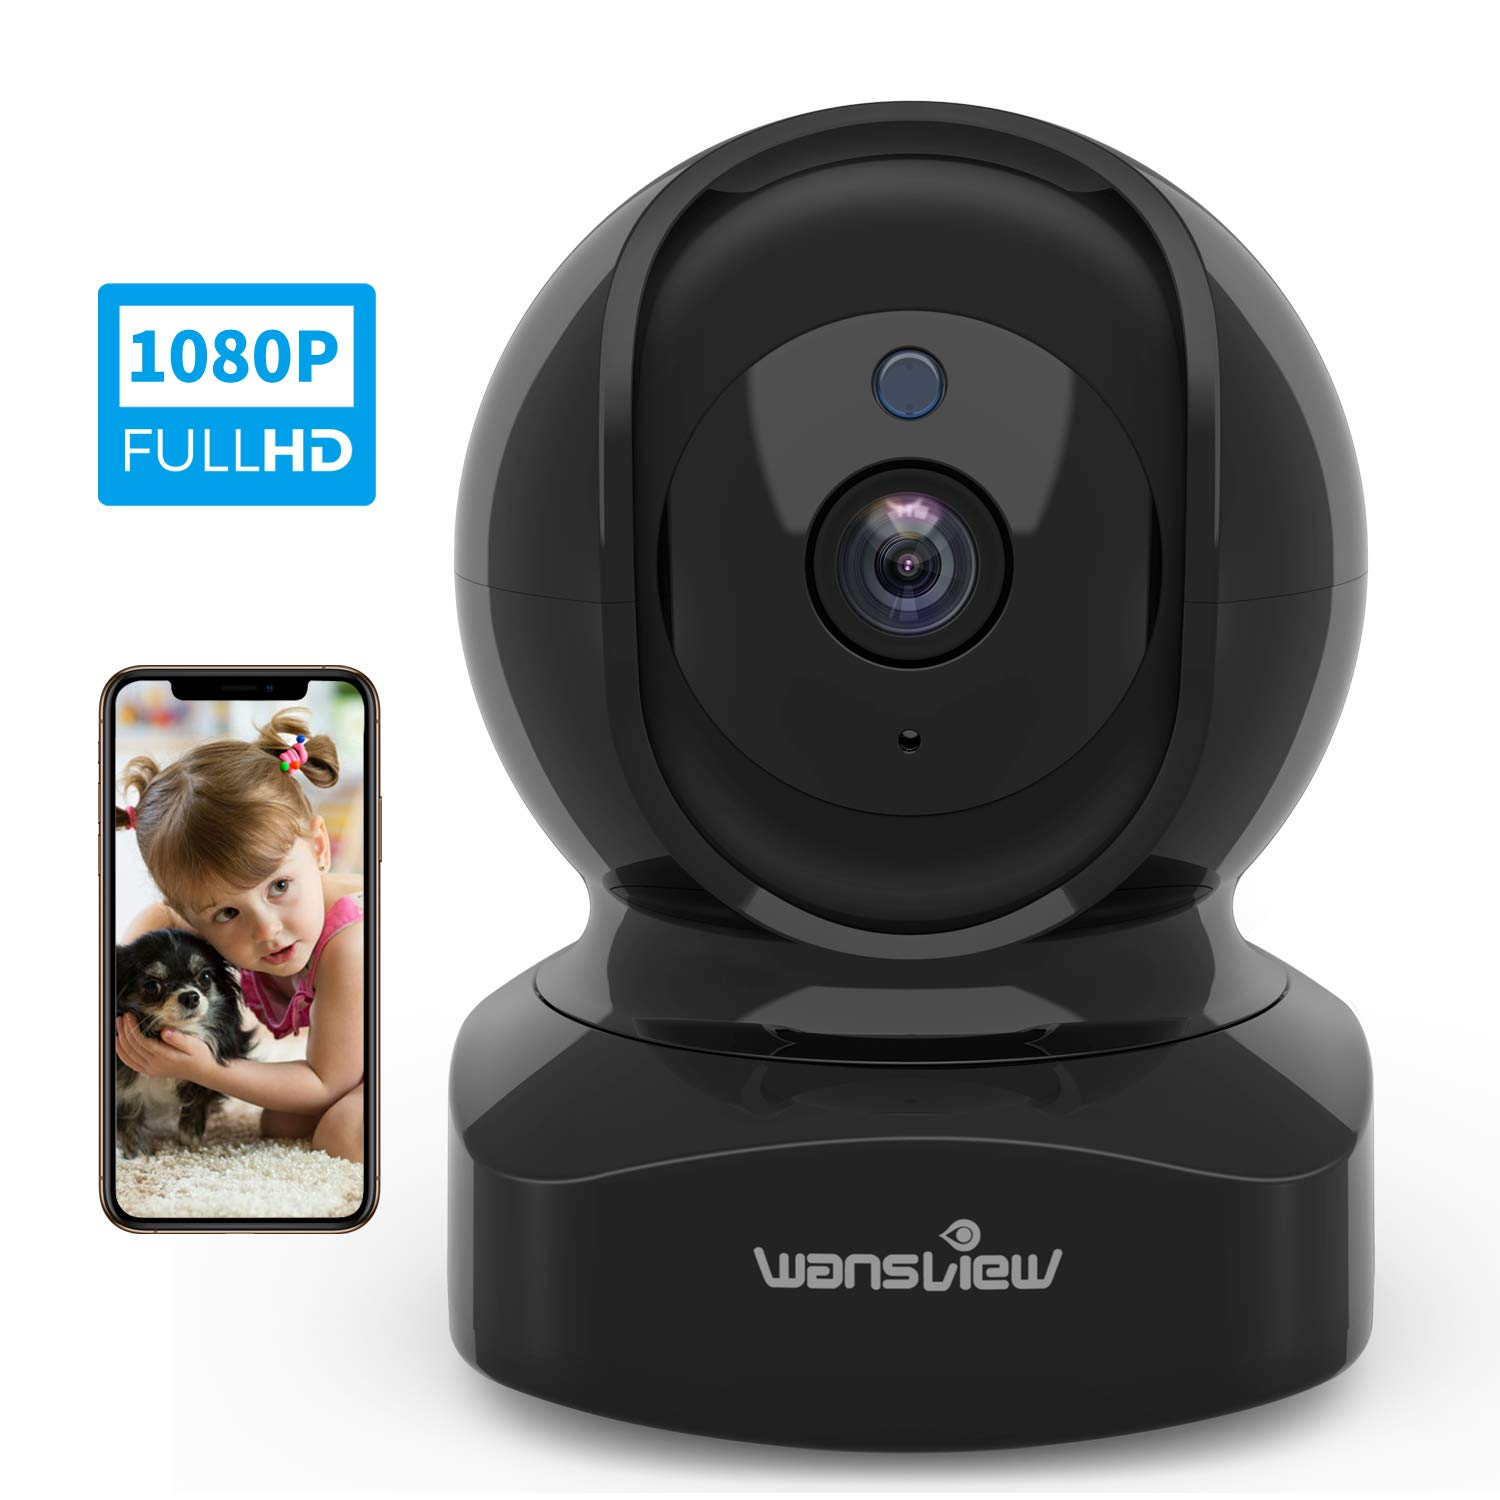 Videocamera WiFi, Wansview FHD 1080P